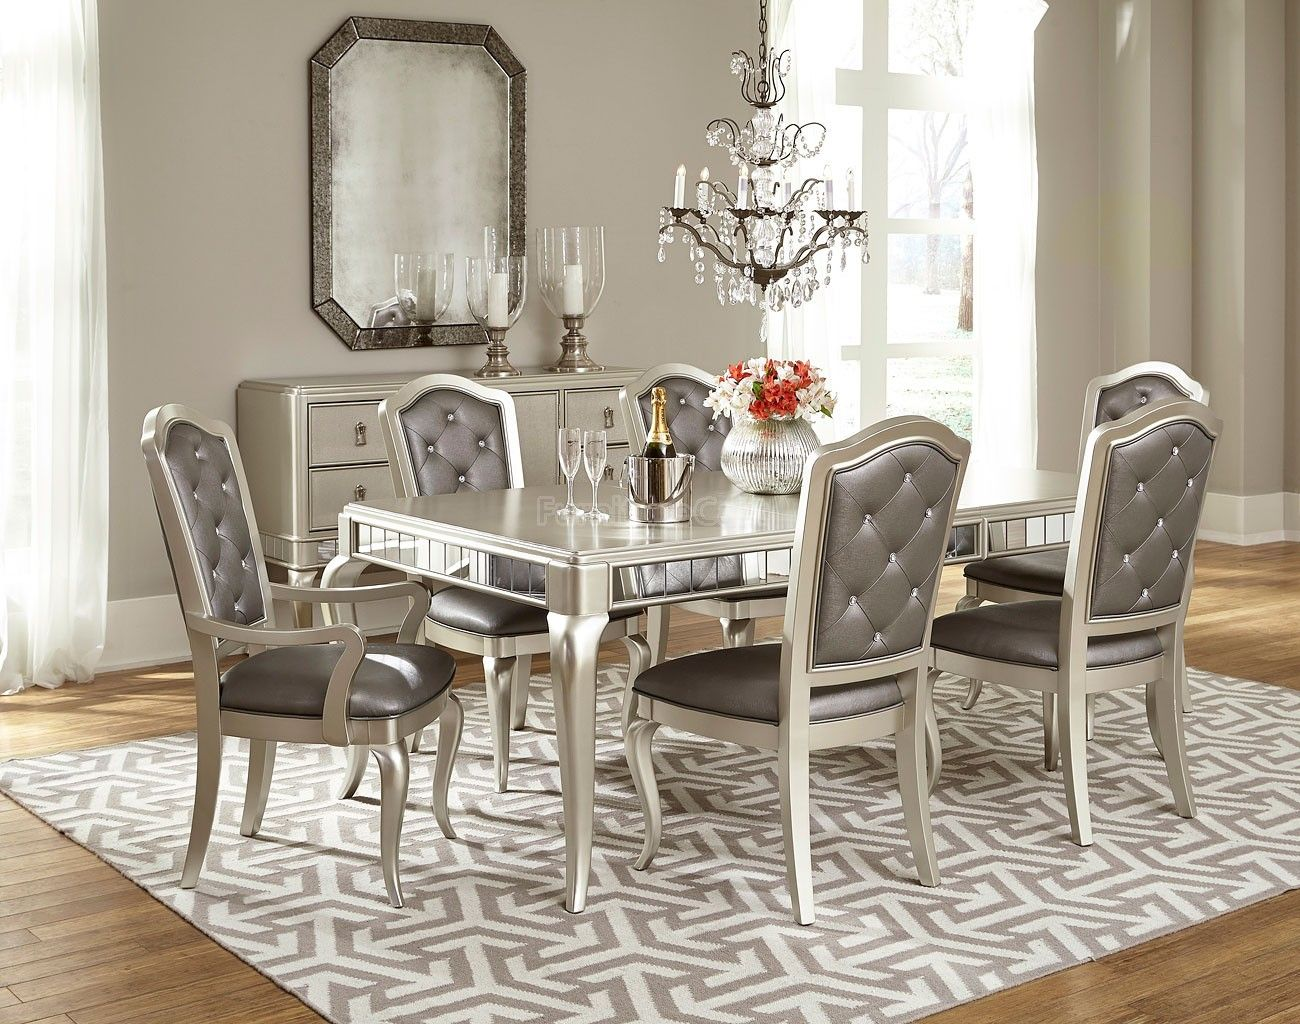 Diva Dining Room Set Samuel Lawrence Furniture Furniture